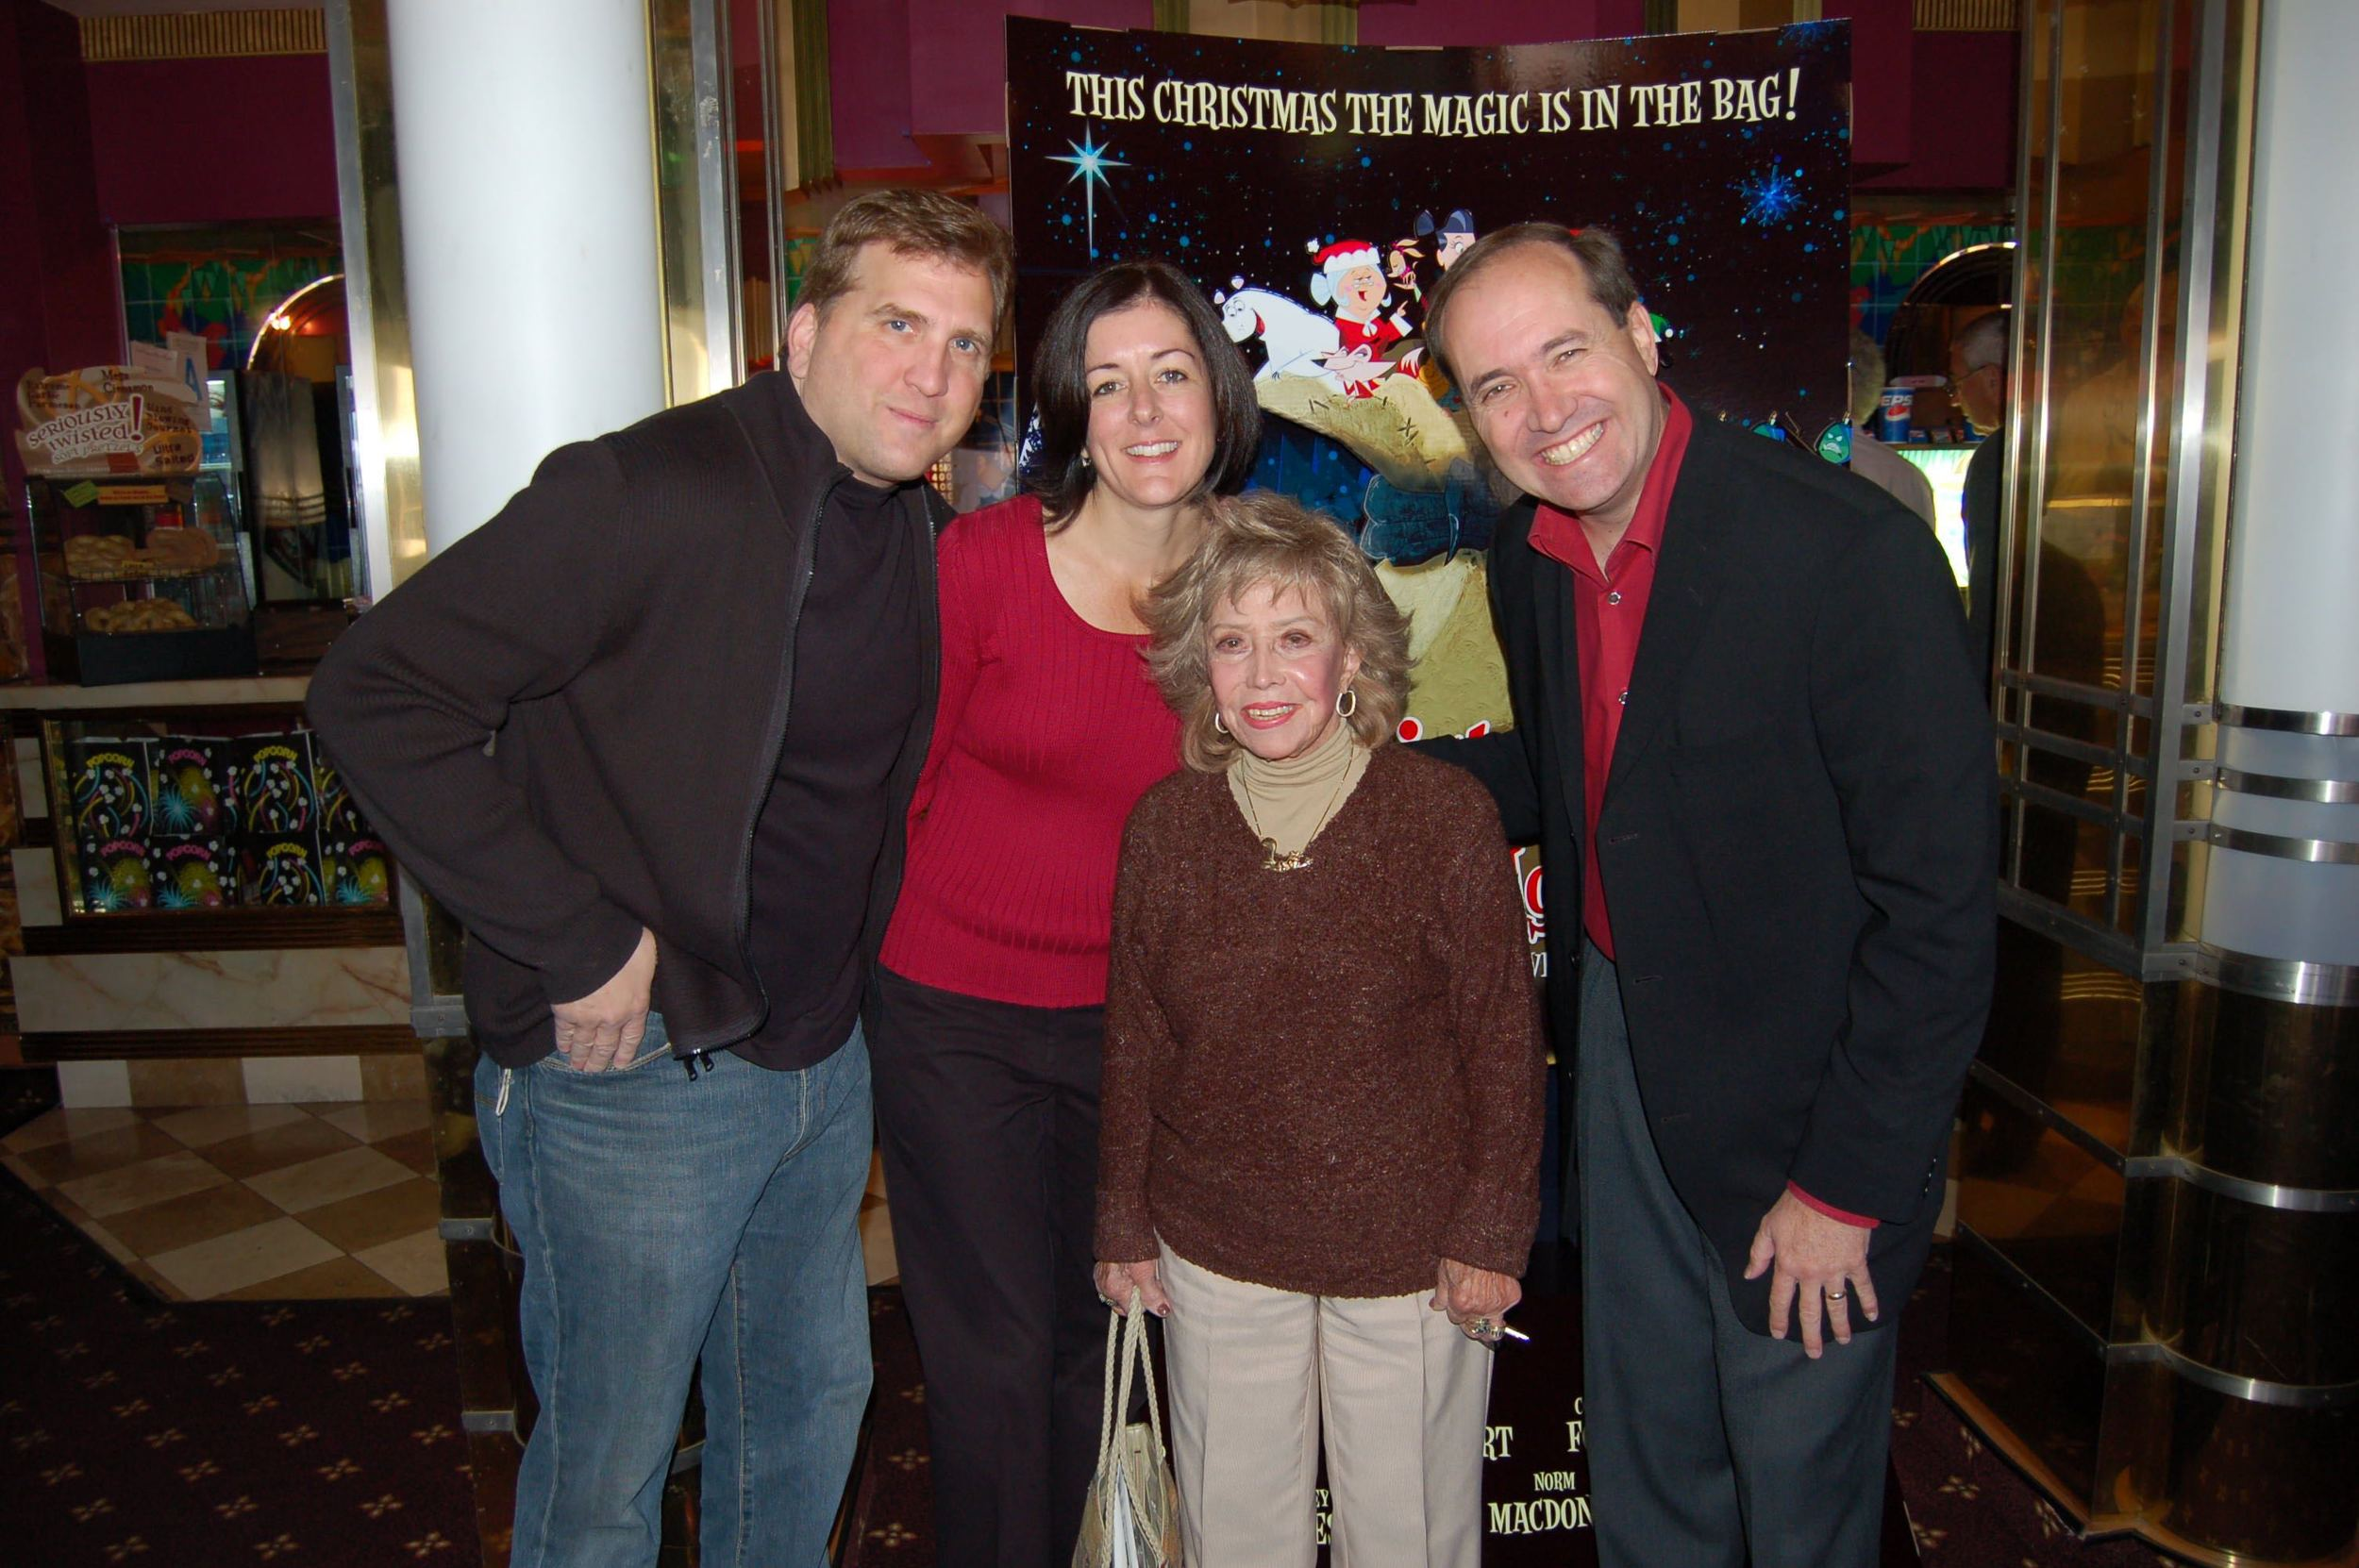 Daniel Roebuck, Ashley Postlewaite and Darrell Van Citters pictured with June Foray, a legendary voice actress best known for the voice of Rocky the Flying Squirrel.